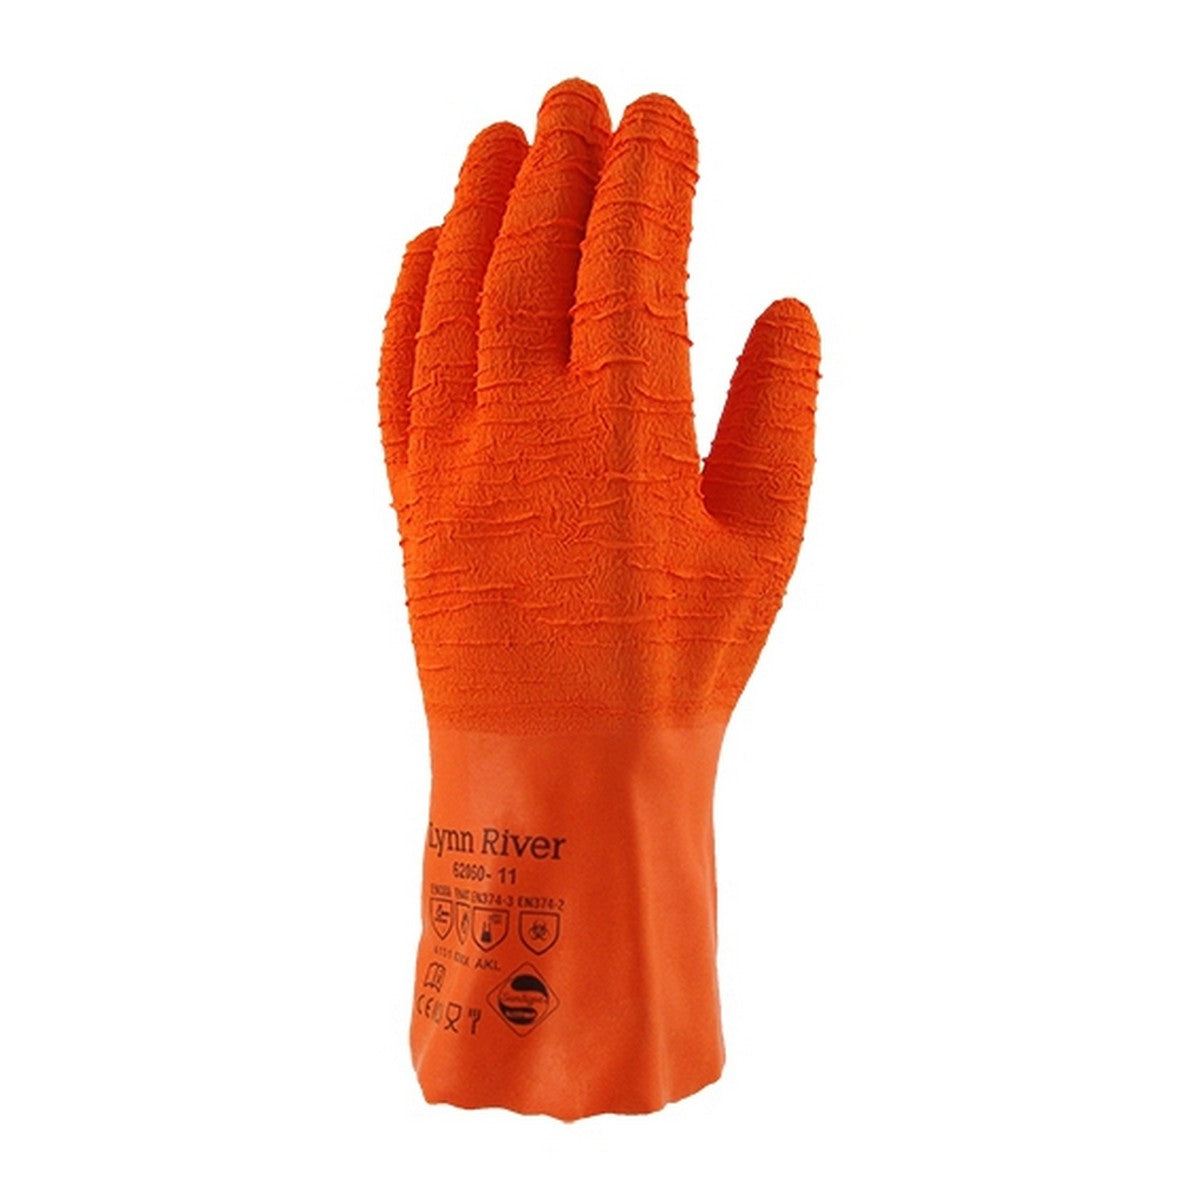 Image of Lynn River Orange Rubber Grip Glove